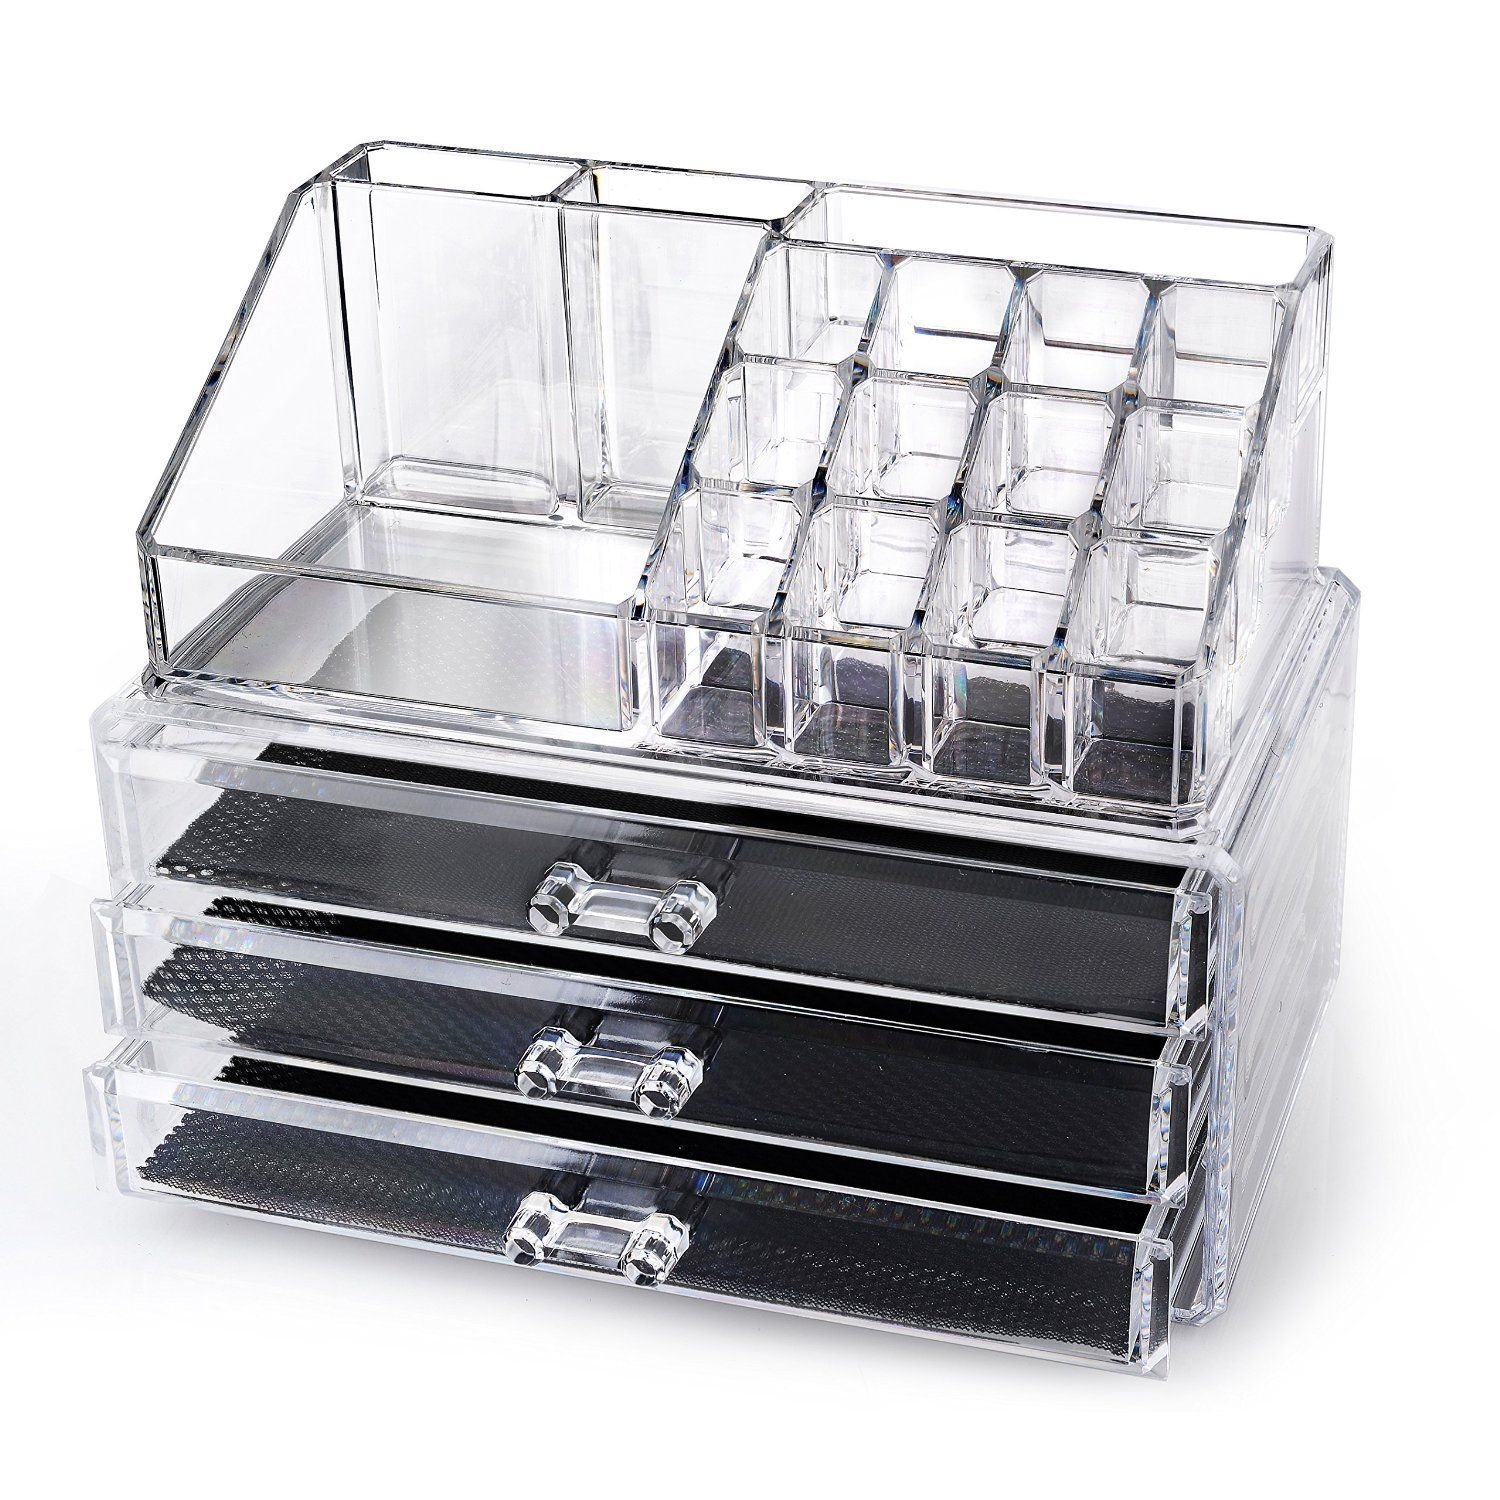 Generic NV_1008002482_YC-US2 ClearLar Jewelry Chest Make awers Cosmetic Holder lry C Up Case Organizer Make Large 3 Drawers se Or 2 pcs Clear Cosmeti